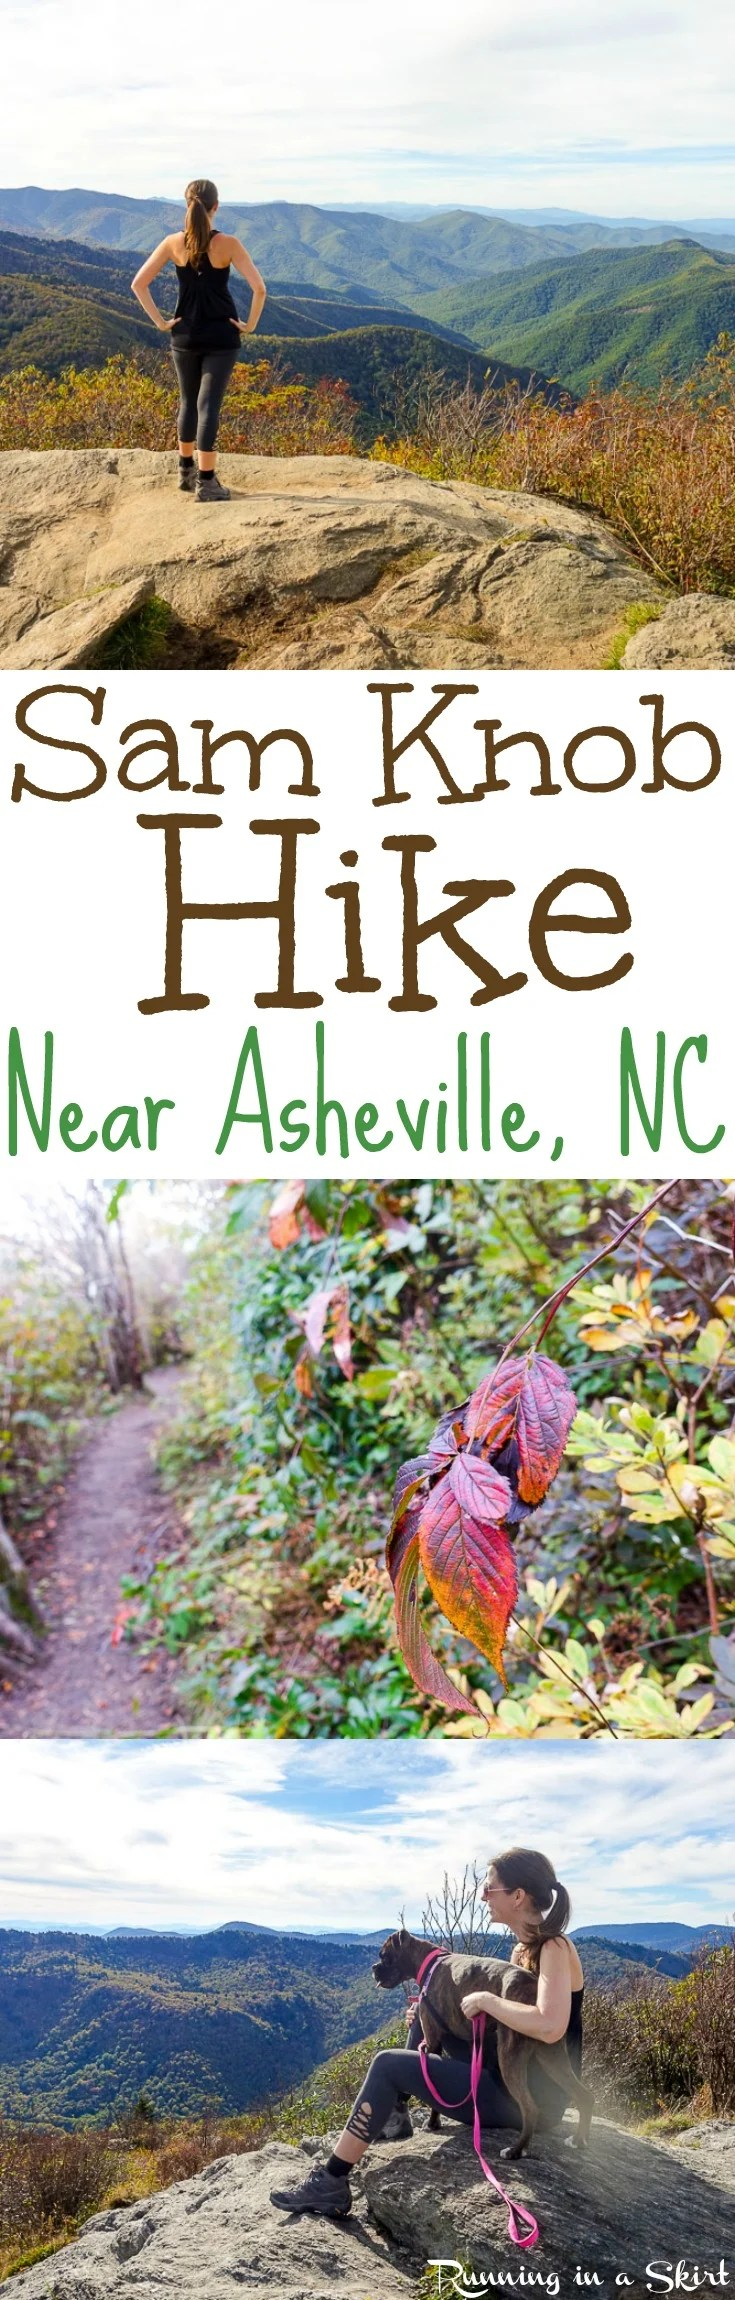 Sam Knob Hike - Details about this gorgeous 2 1/12 mile summit view day hike along the Blue Ridge Parkway near Asheville, North Carolina. Beautiful NC Mountains fall views and one of my favorite Asheville hikes. / Running in a Skirt via @juliewunder